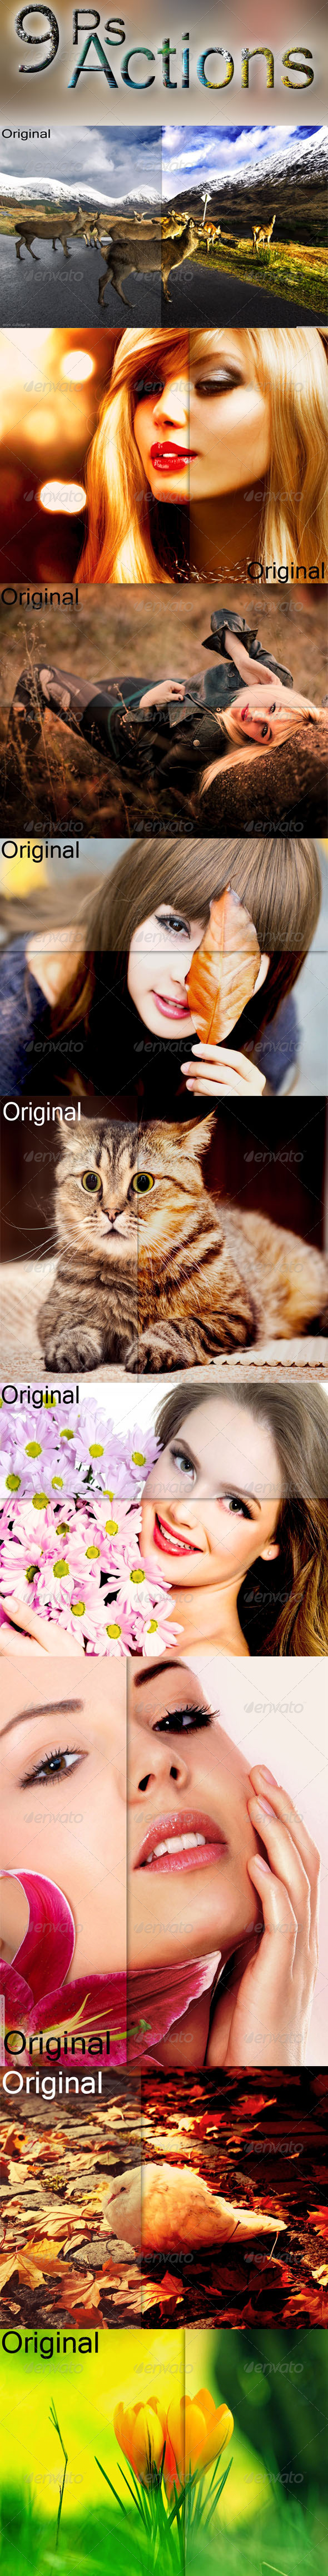 GraphicRiver 9 Ps Actions 7523280